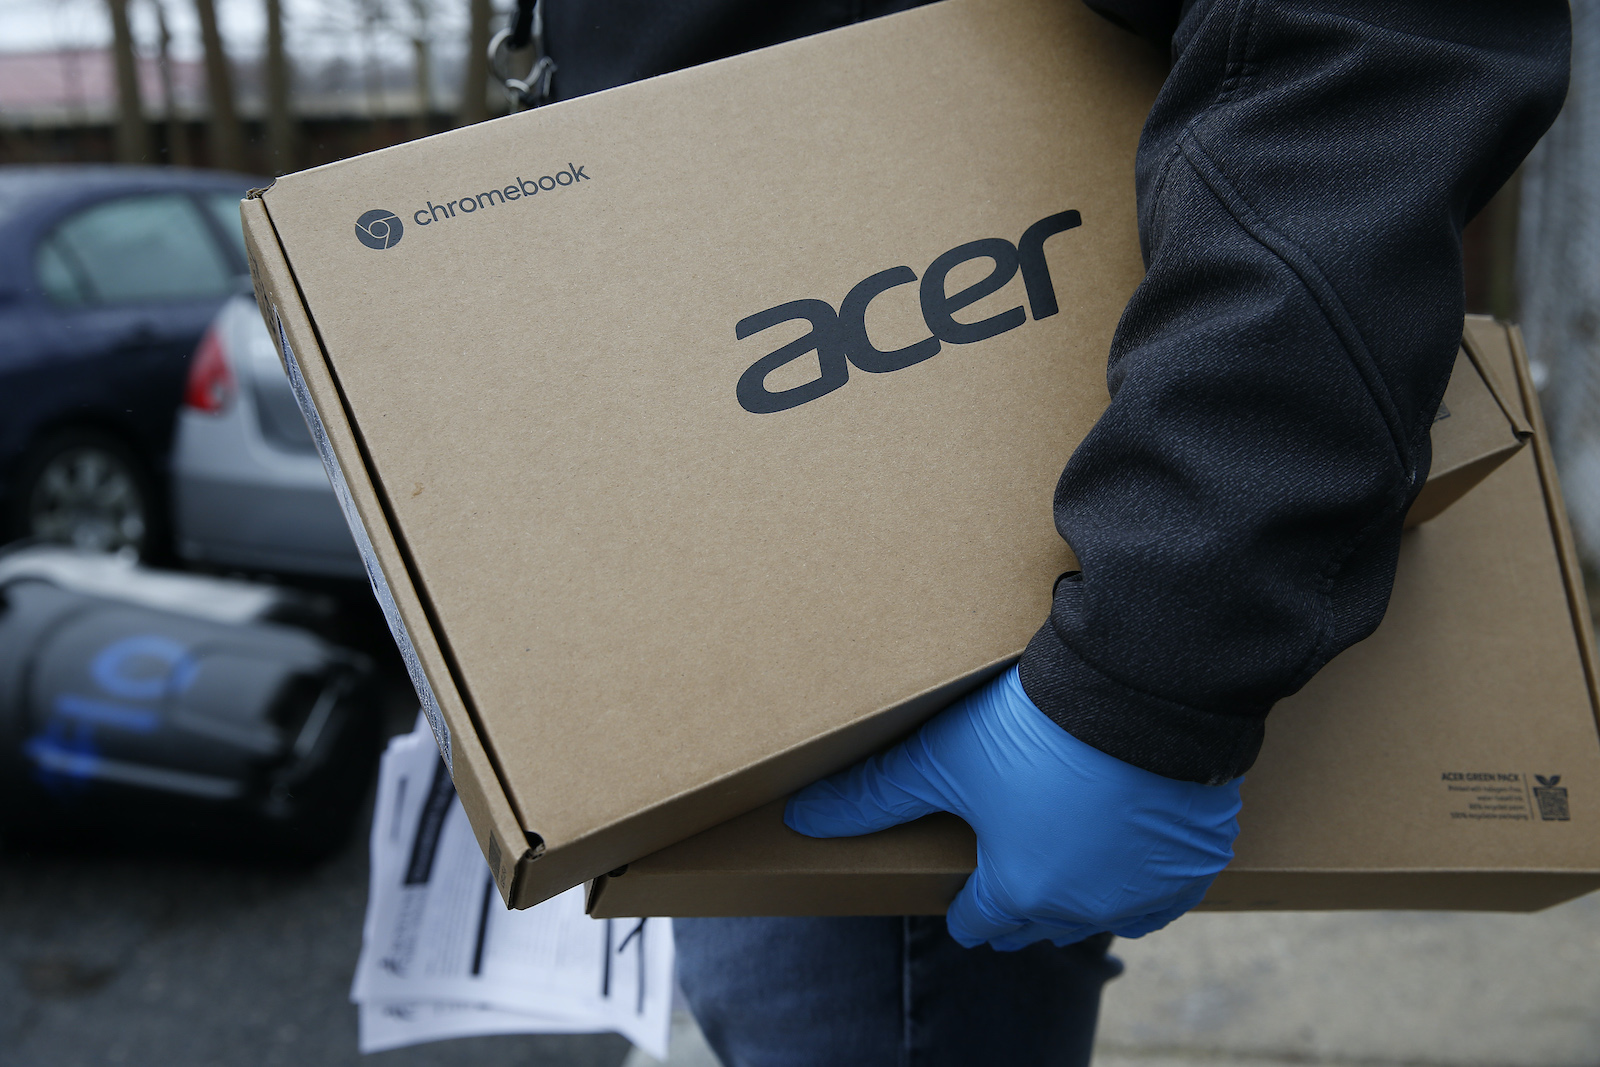 BOSTON, MA - MARCH 19: Boston Public Schools employee Giscar Centeio holds two laptops as he does a dry run going door to door handing out Acer chromebooks to students in Boston on March 19, 2020. Students have to do classwork from home now that all Massachusetts schools have closed to stop the spread of coronavirus. (Photo by Jessica Rinaldi/The Boston Globe via Getty Images)